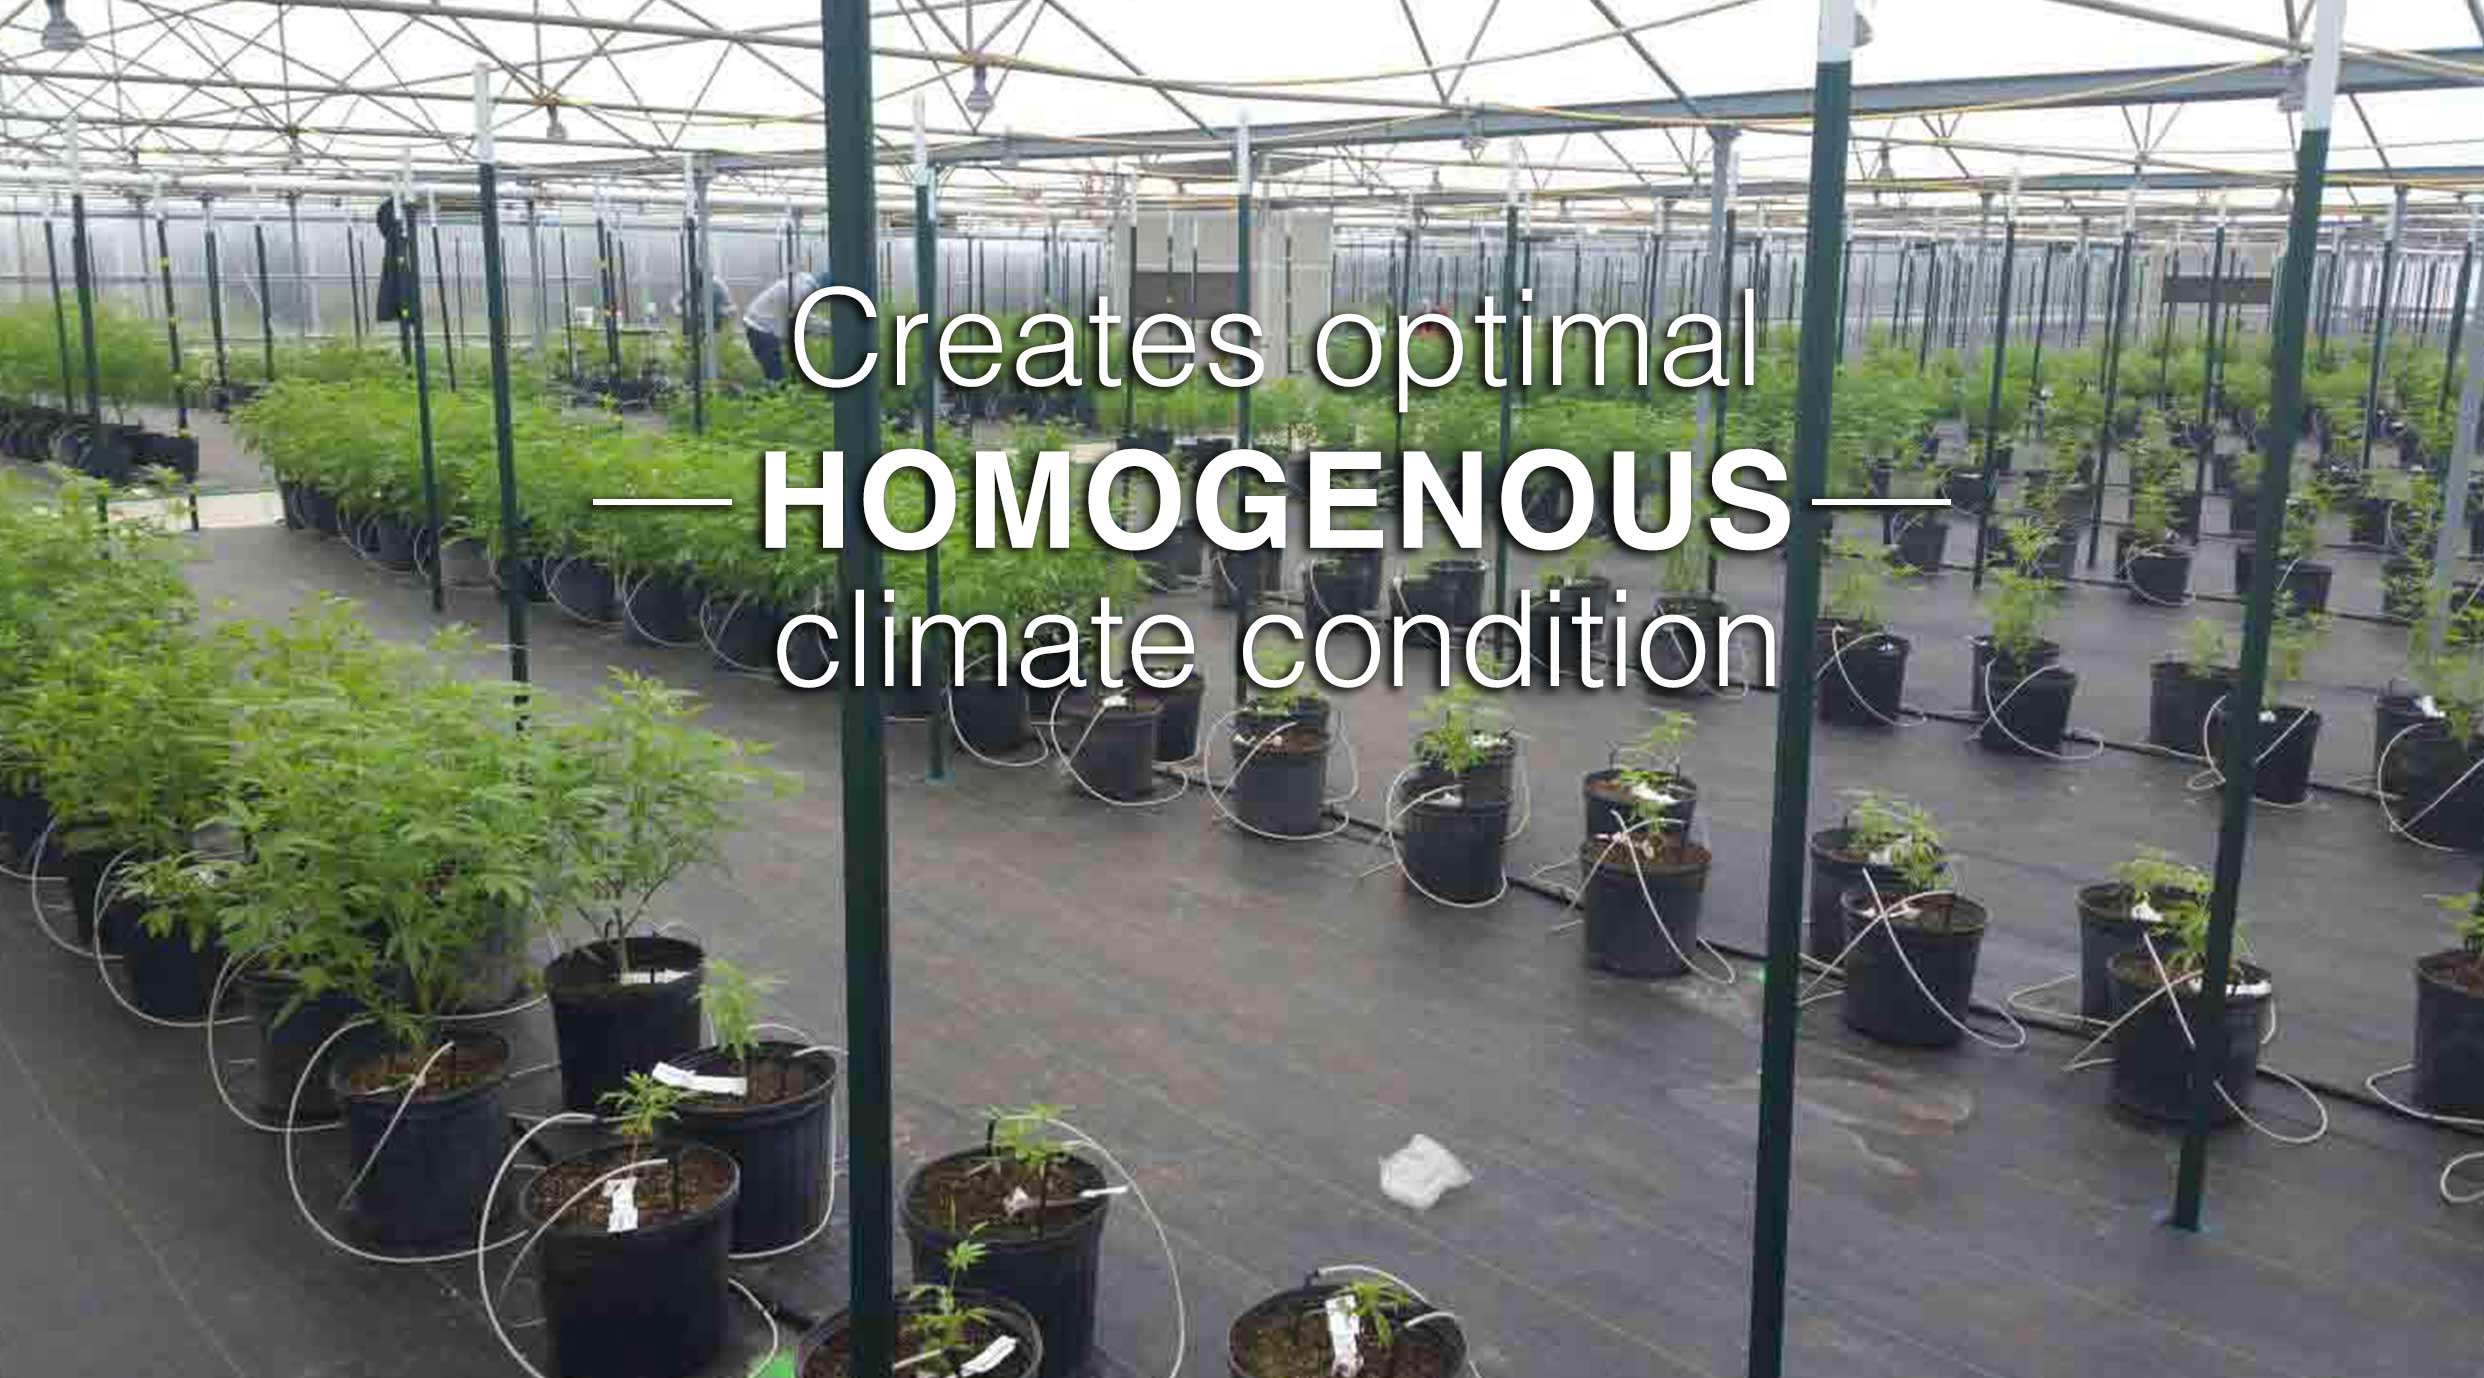 cannabis greenhouse optimal homogenous climate condition